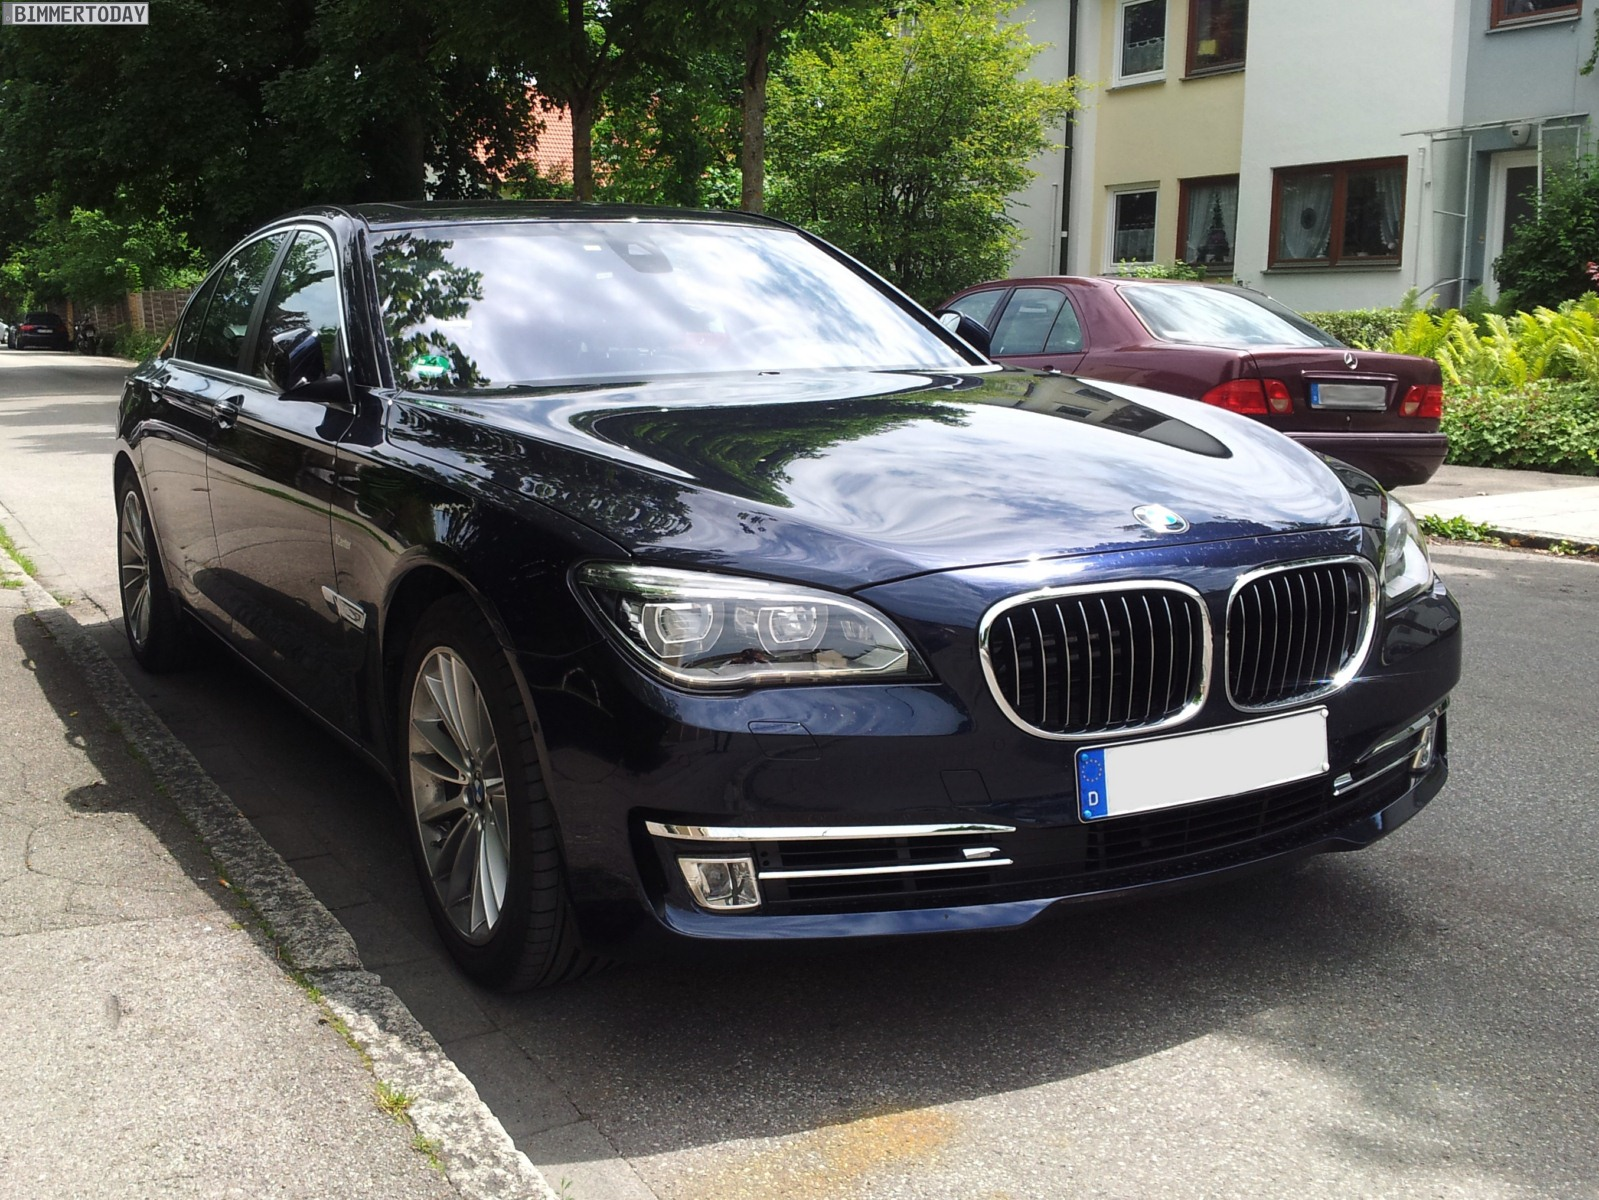 Bmw 7 Series 730d 2012 Technical Specifications Interior